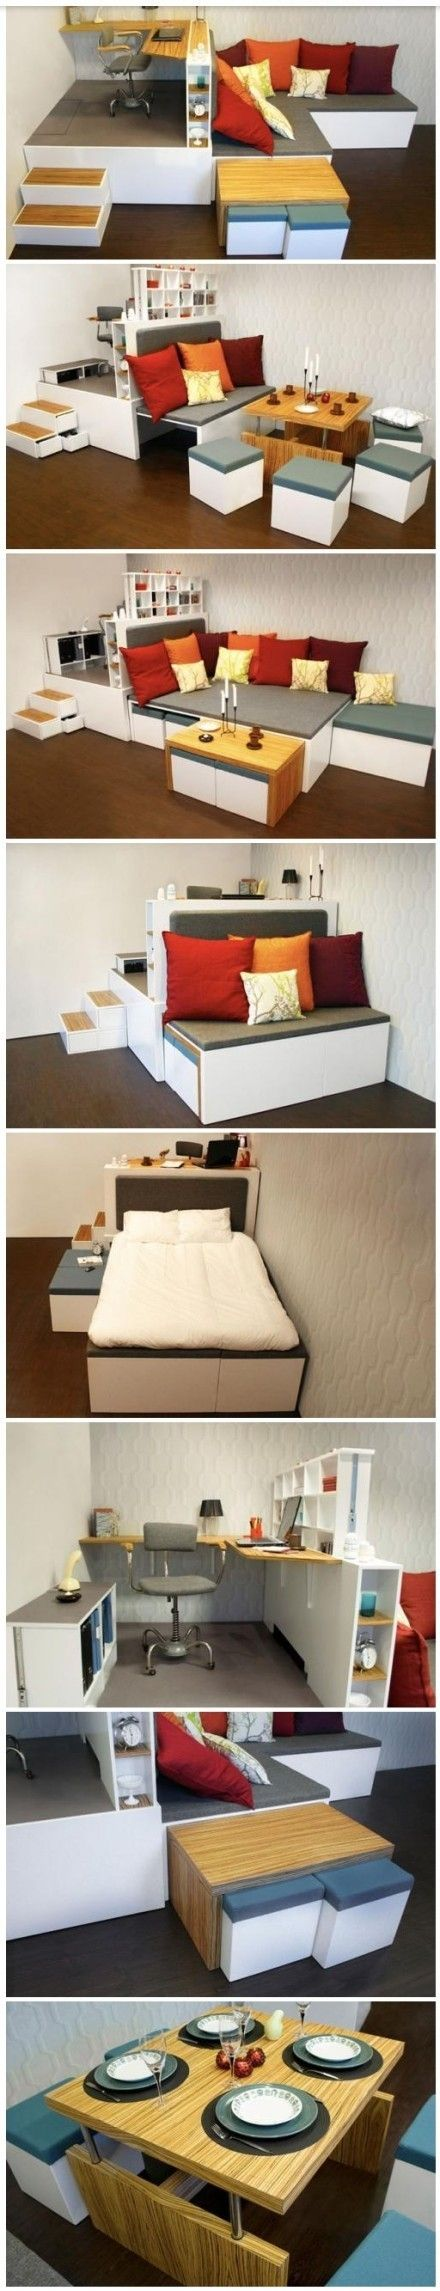 multifunctional furniture for small spaces. An All-in-one Set Up For Tiny Homes Or Houses. The Bed Is Hidden In Plan Sight, Dining Table + Storage Stools Tuck Away Beneath Office Platform. Multifunctional Furniture Small Spaces